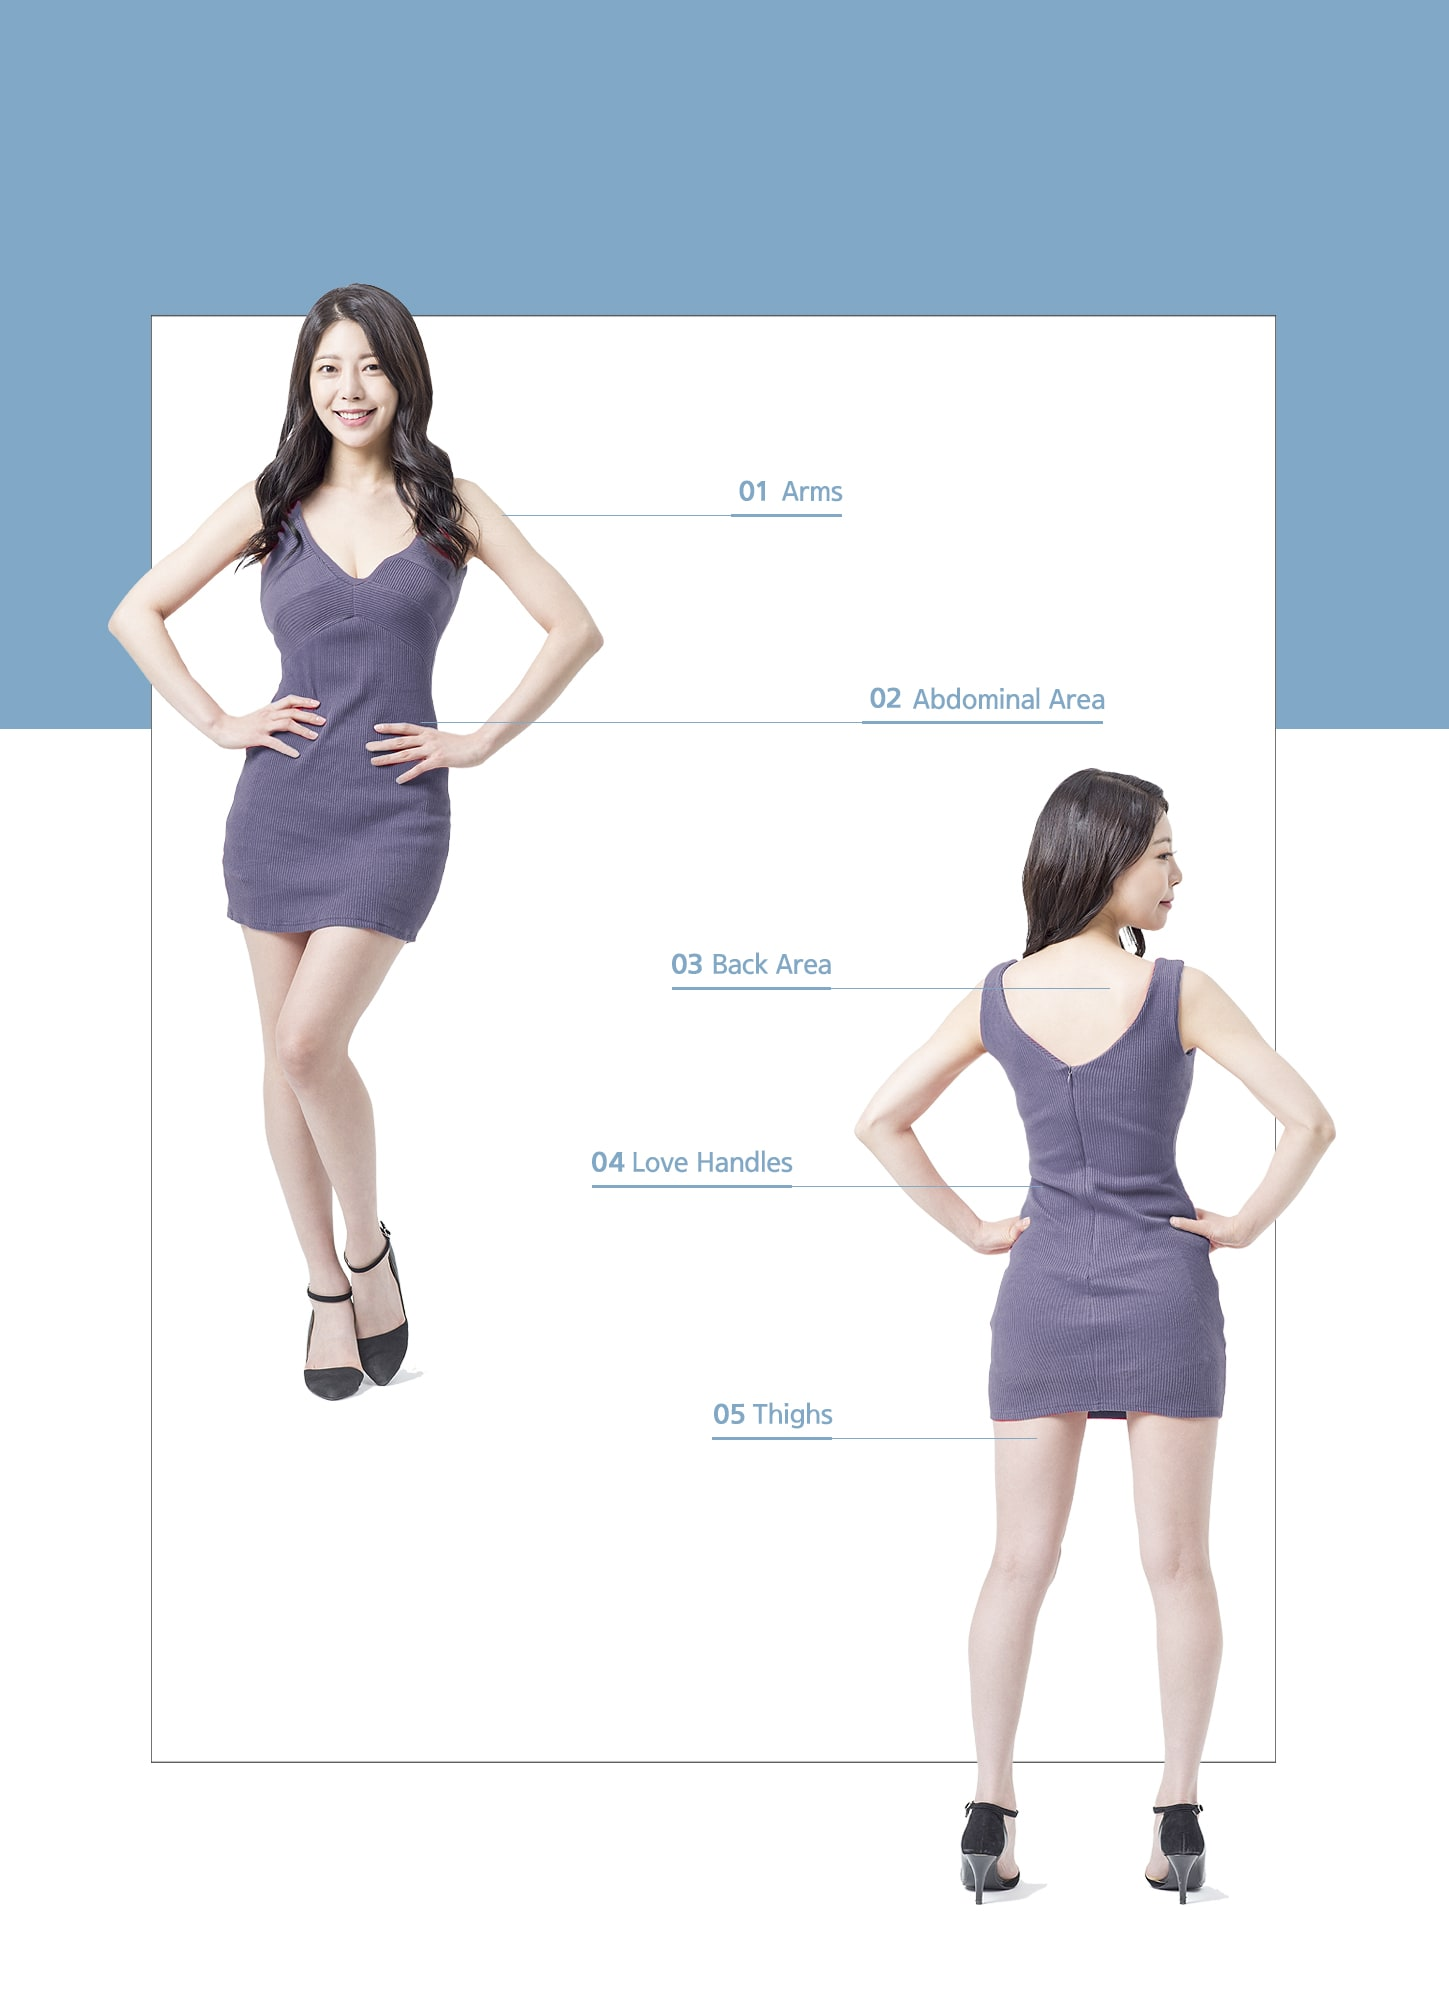 Liposuction Applied Areas